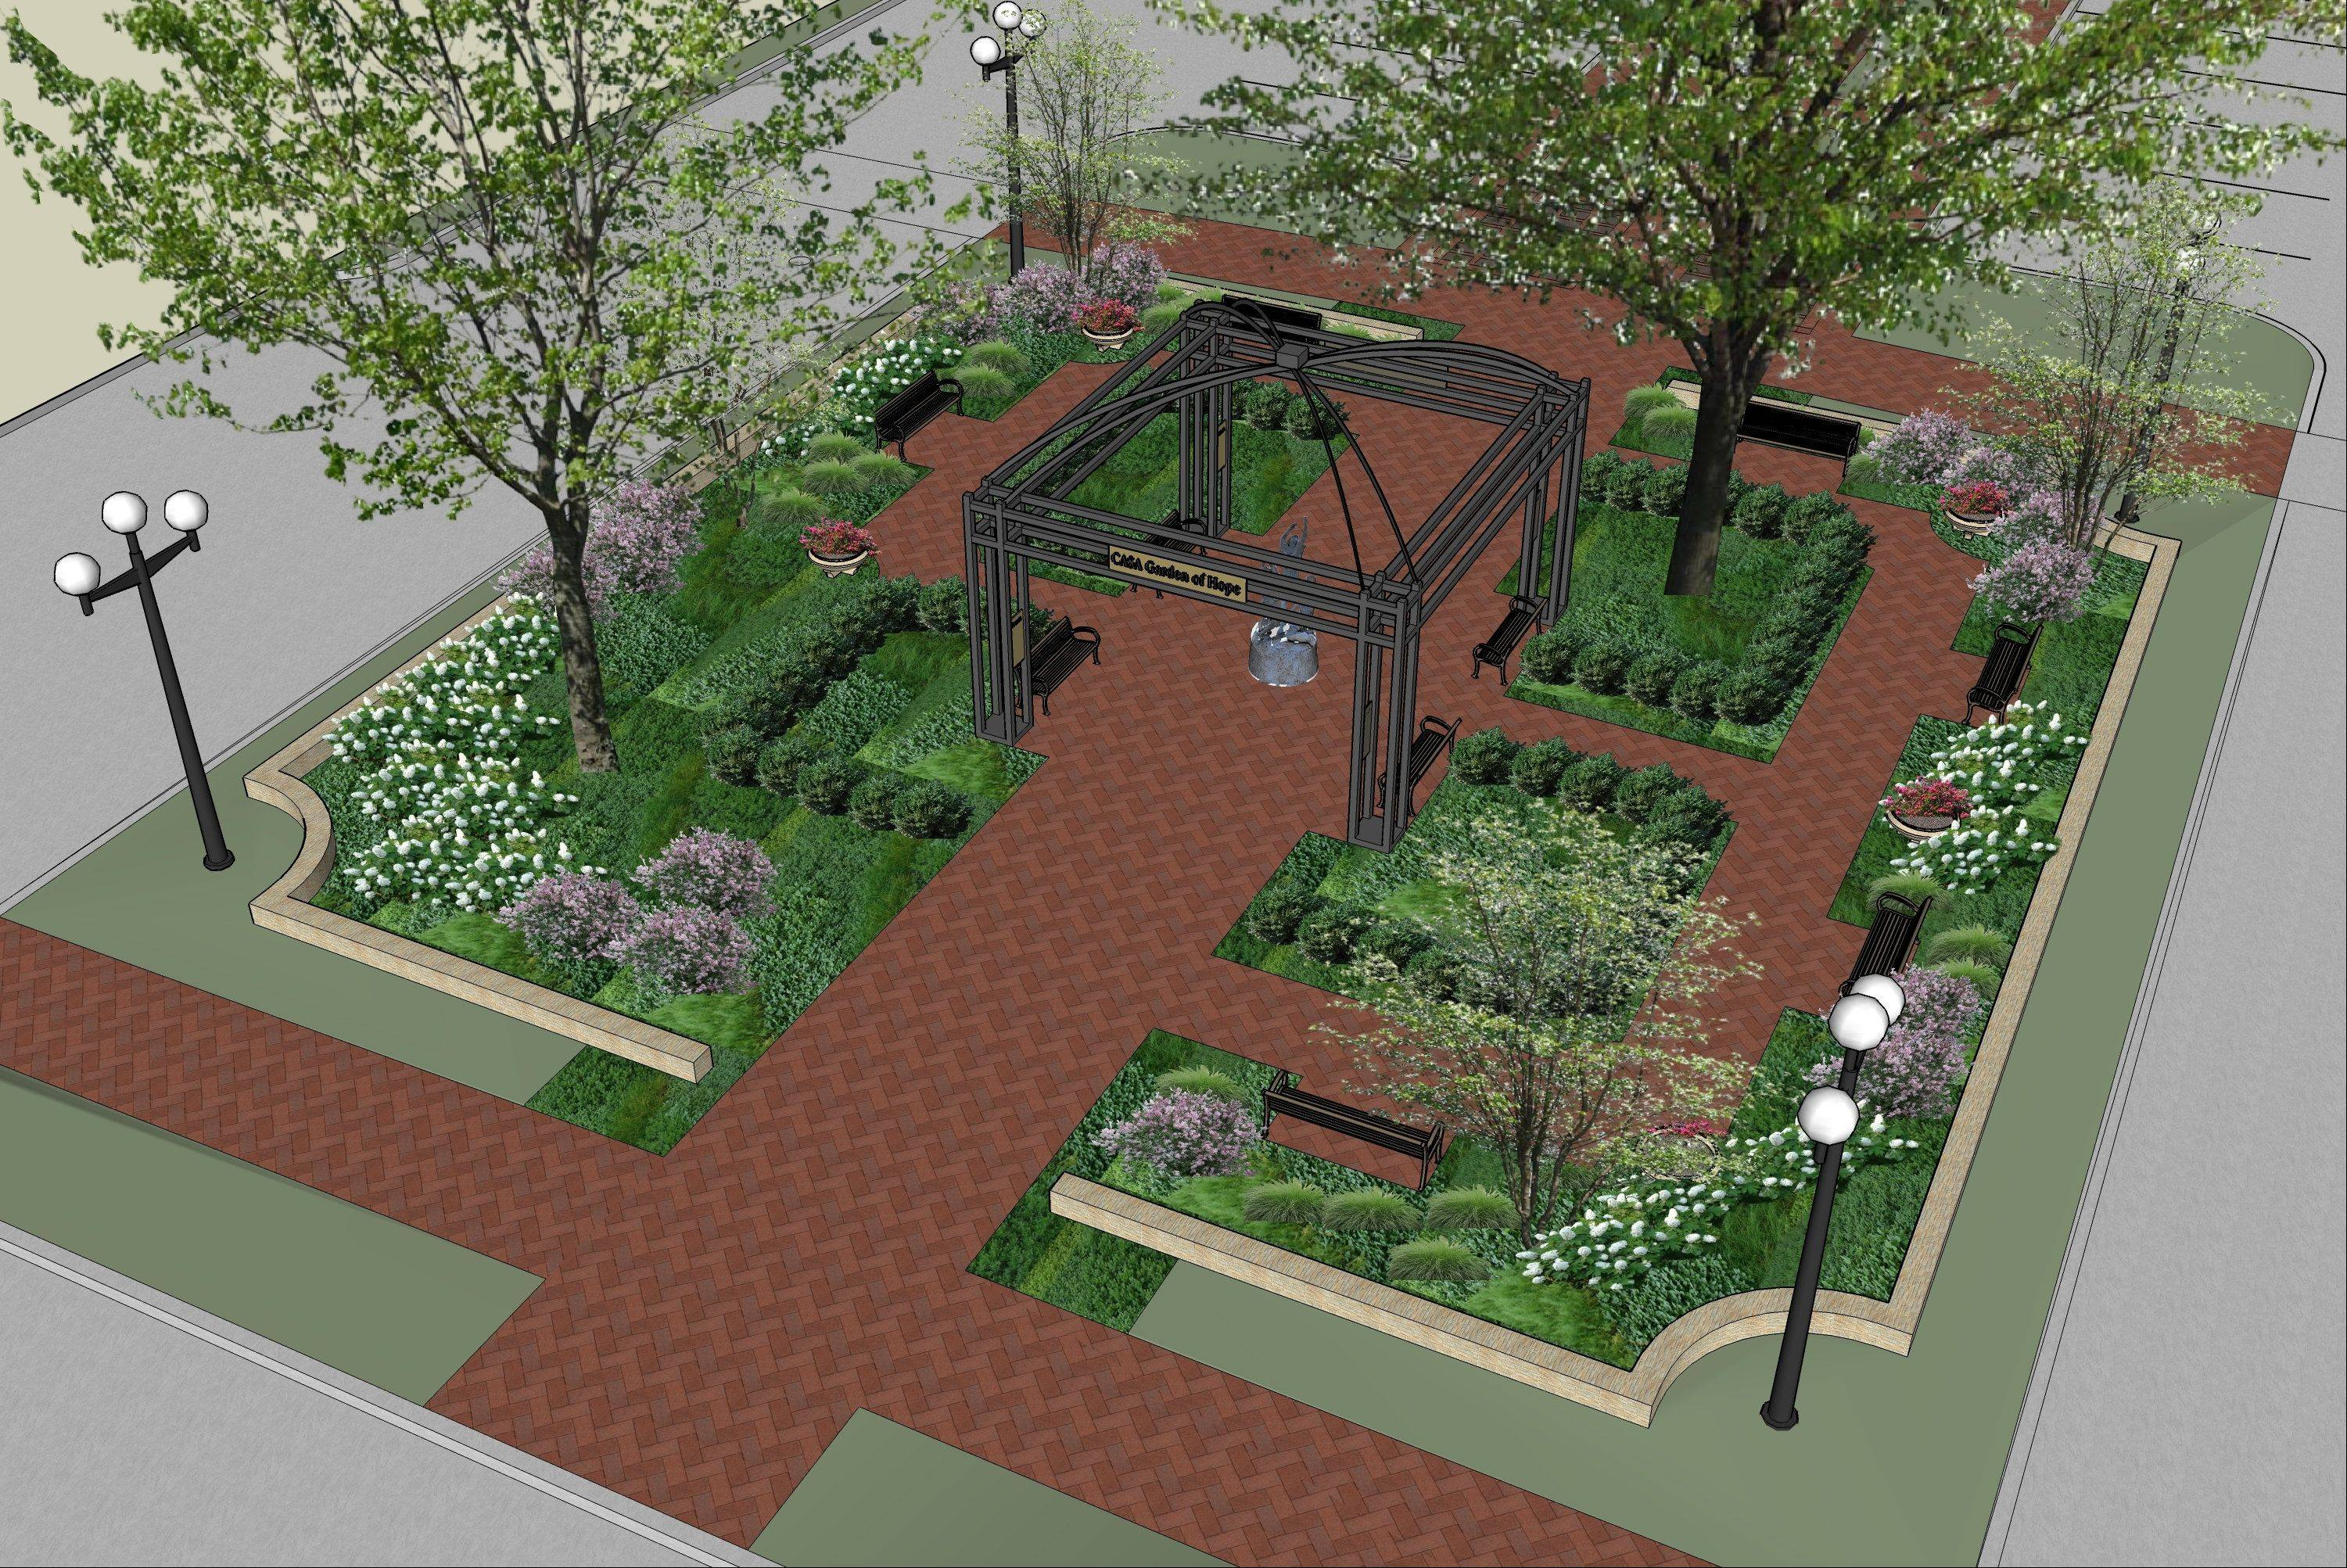 Construction on a 4,100-square-foot garden on the west side of the old courthouse on Third Street in Geneva will begin July 1. CASA Kane County hopes sponsorships and naming opportunities at the garden can boost its endowment fund. Officials also say the garden will provide a place for residents and court personnel to relax and reflect.